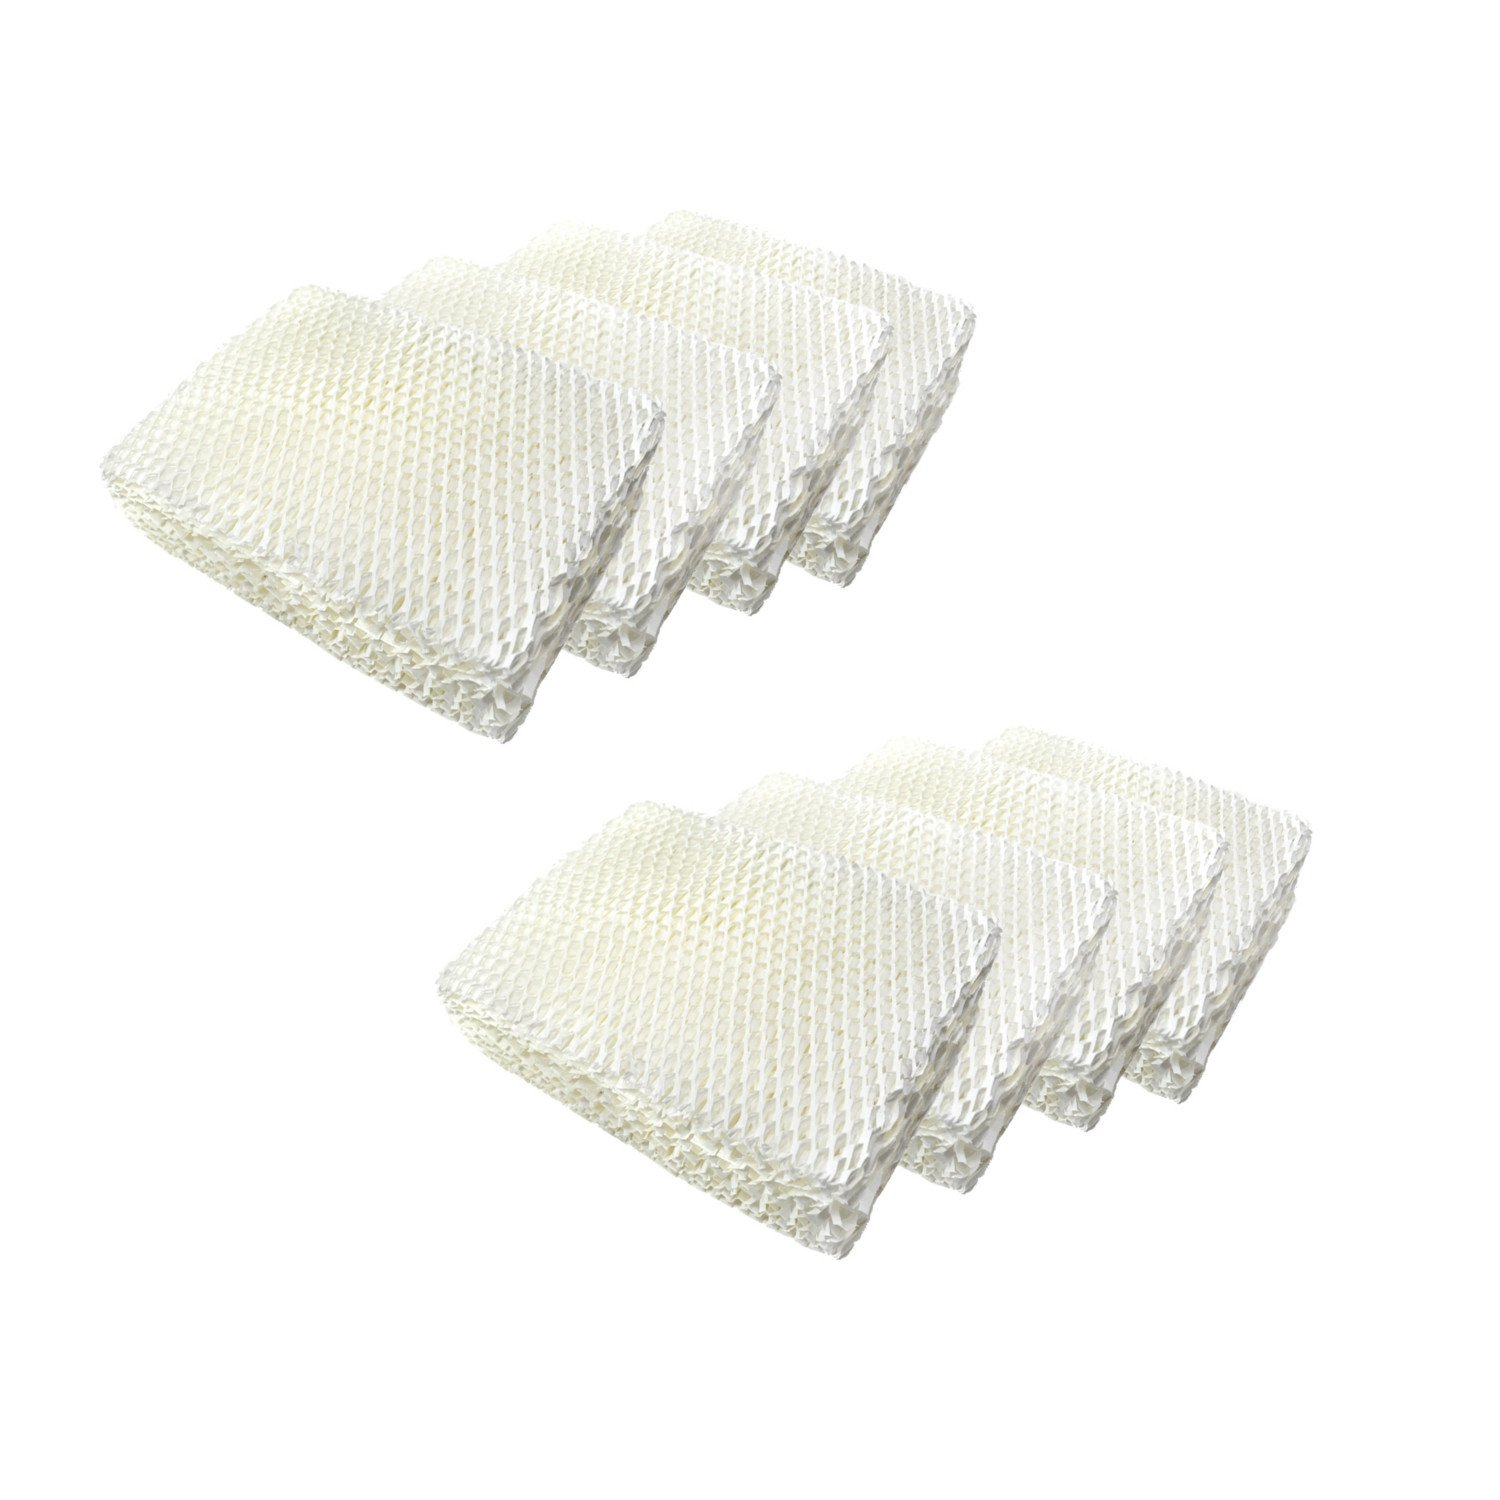 HQRP 8-pack Wick Filter for Kenmore 32-14911 Essick Air HDC12 / HDC-12 Replacement, 15414, 15420, 14452, 14453, 14454, 14415, 14417, 03215420000 + HQRP Coaster